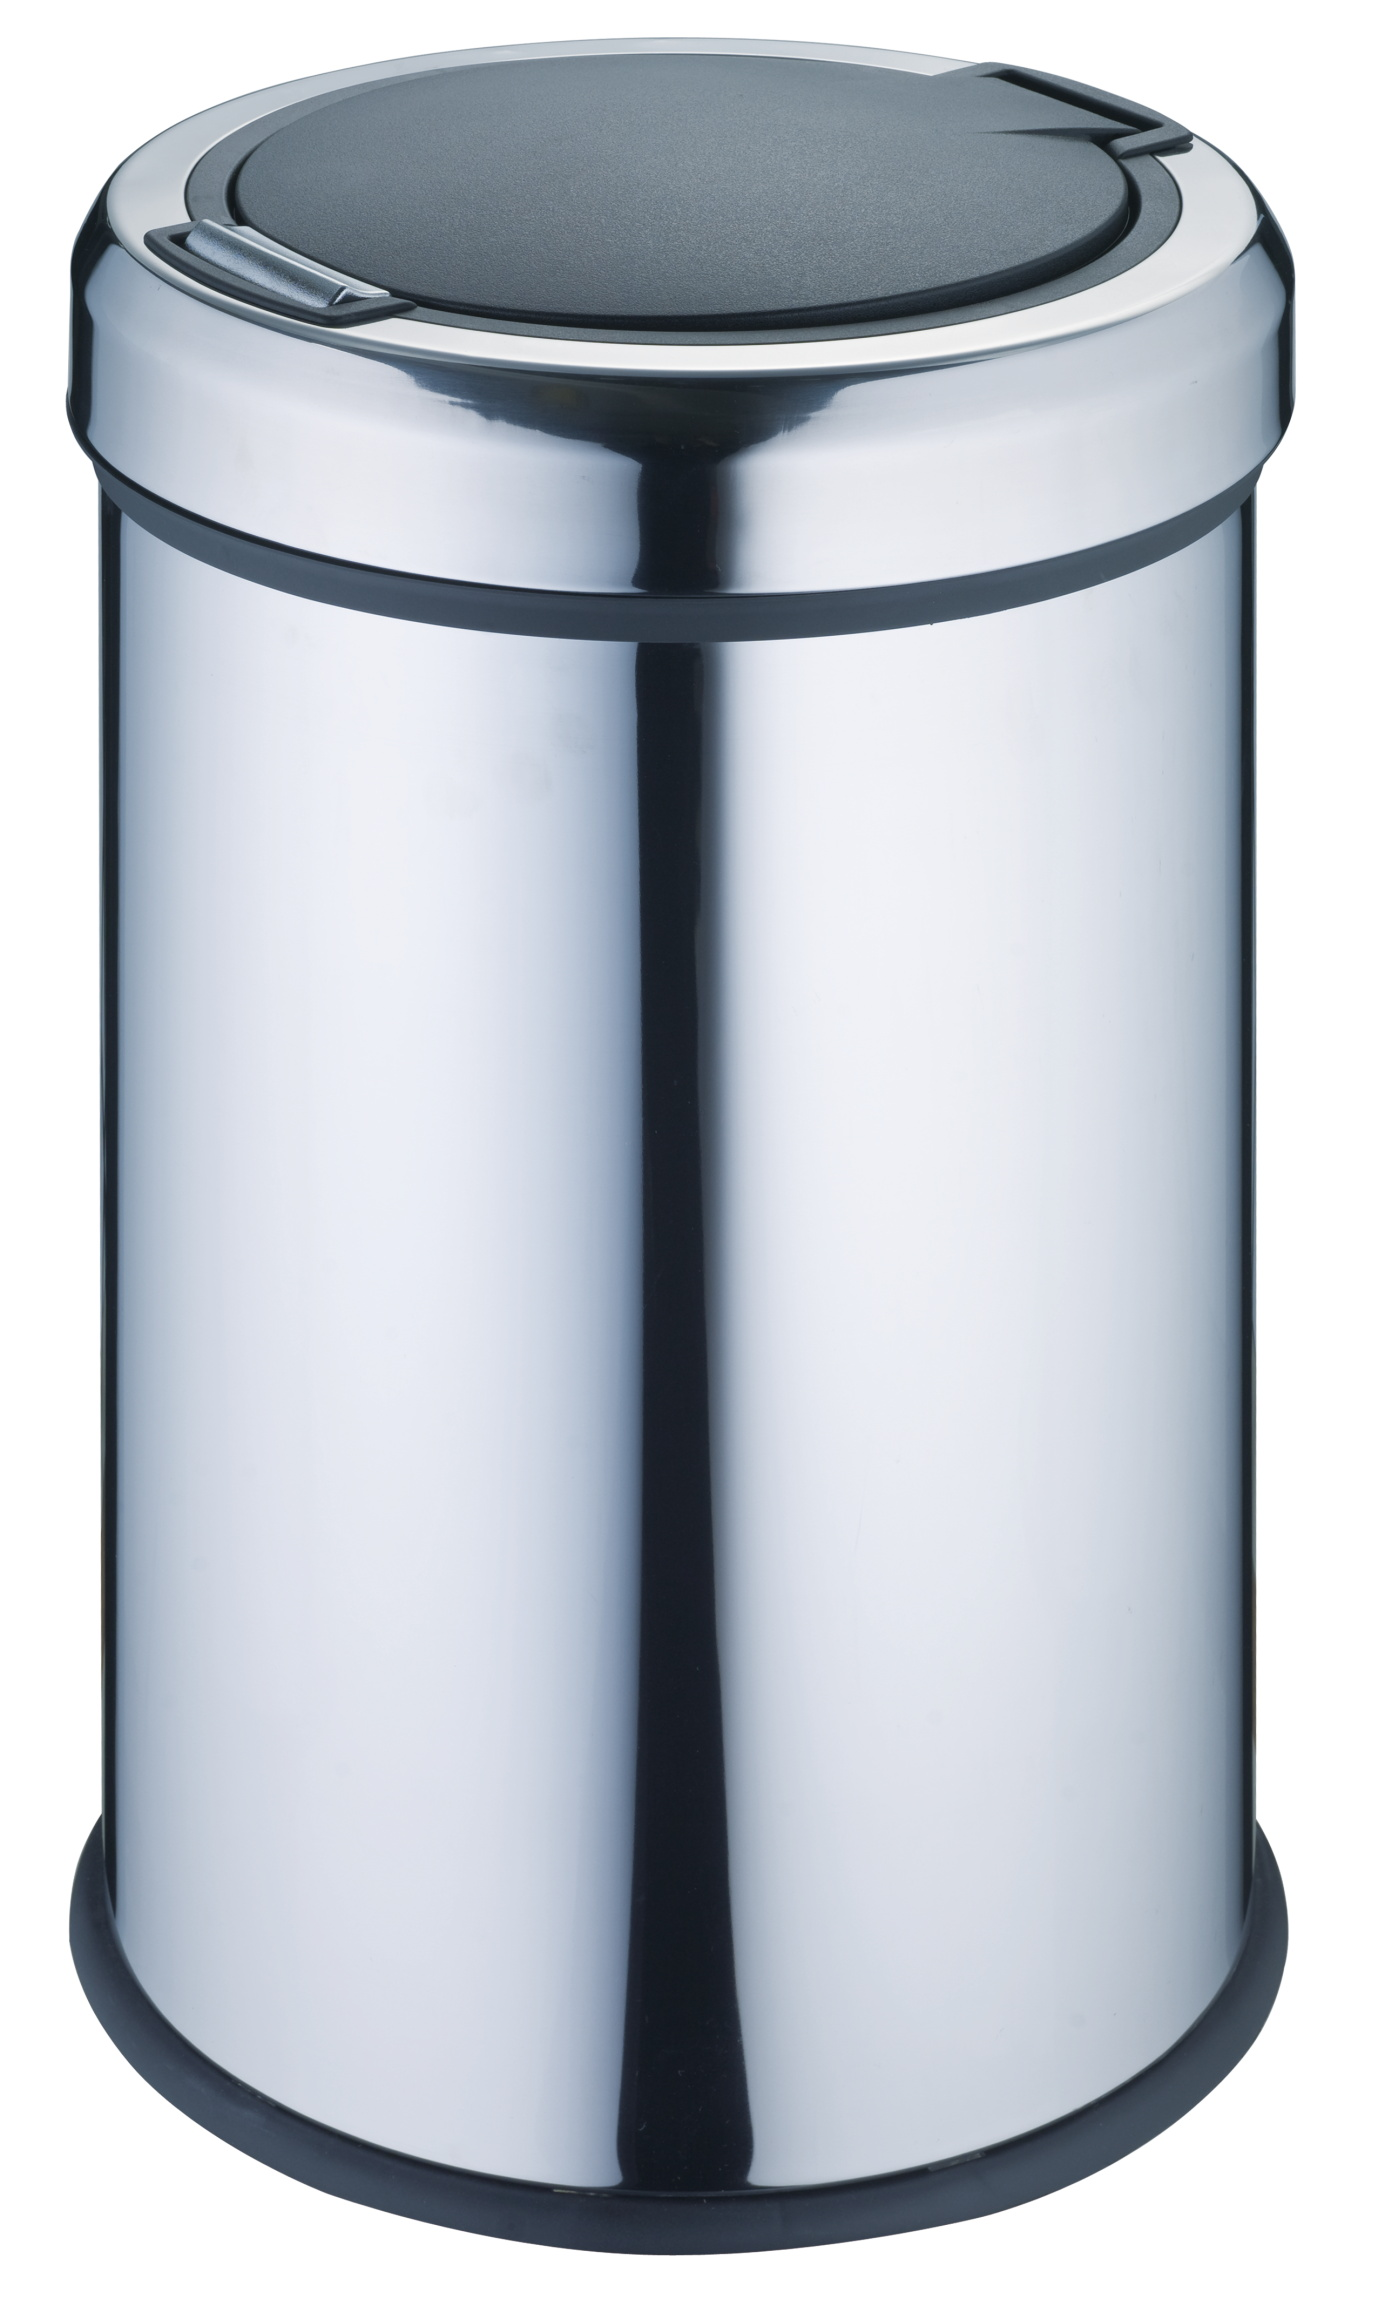 Stainless Steel Push Trash Bin/Trash Can/Garbage Can/Garbage Bin(with PP inner bin)